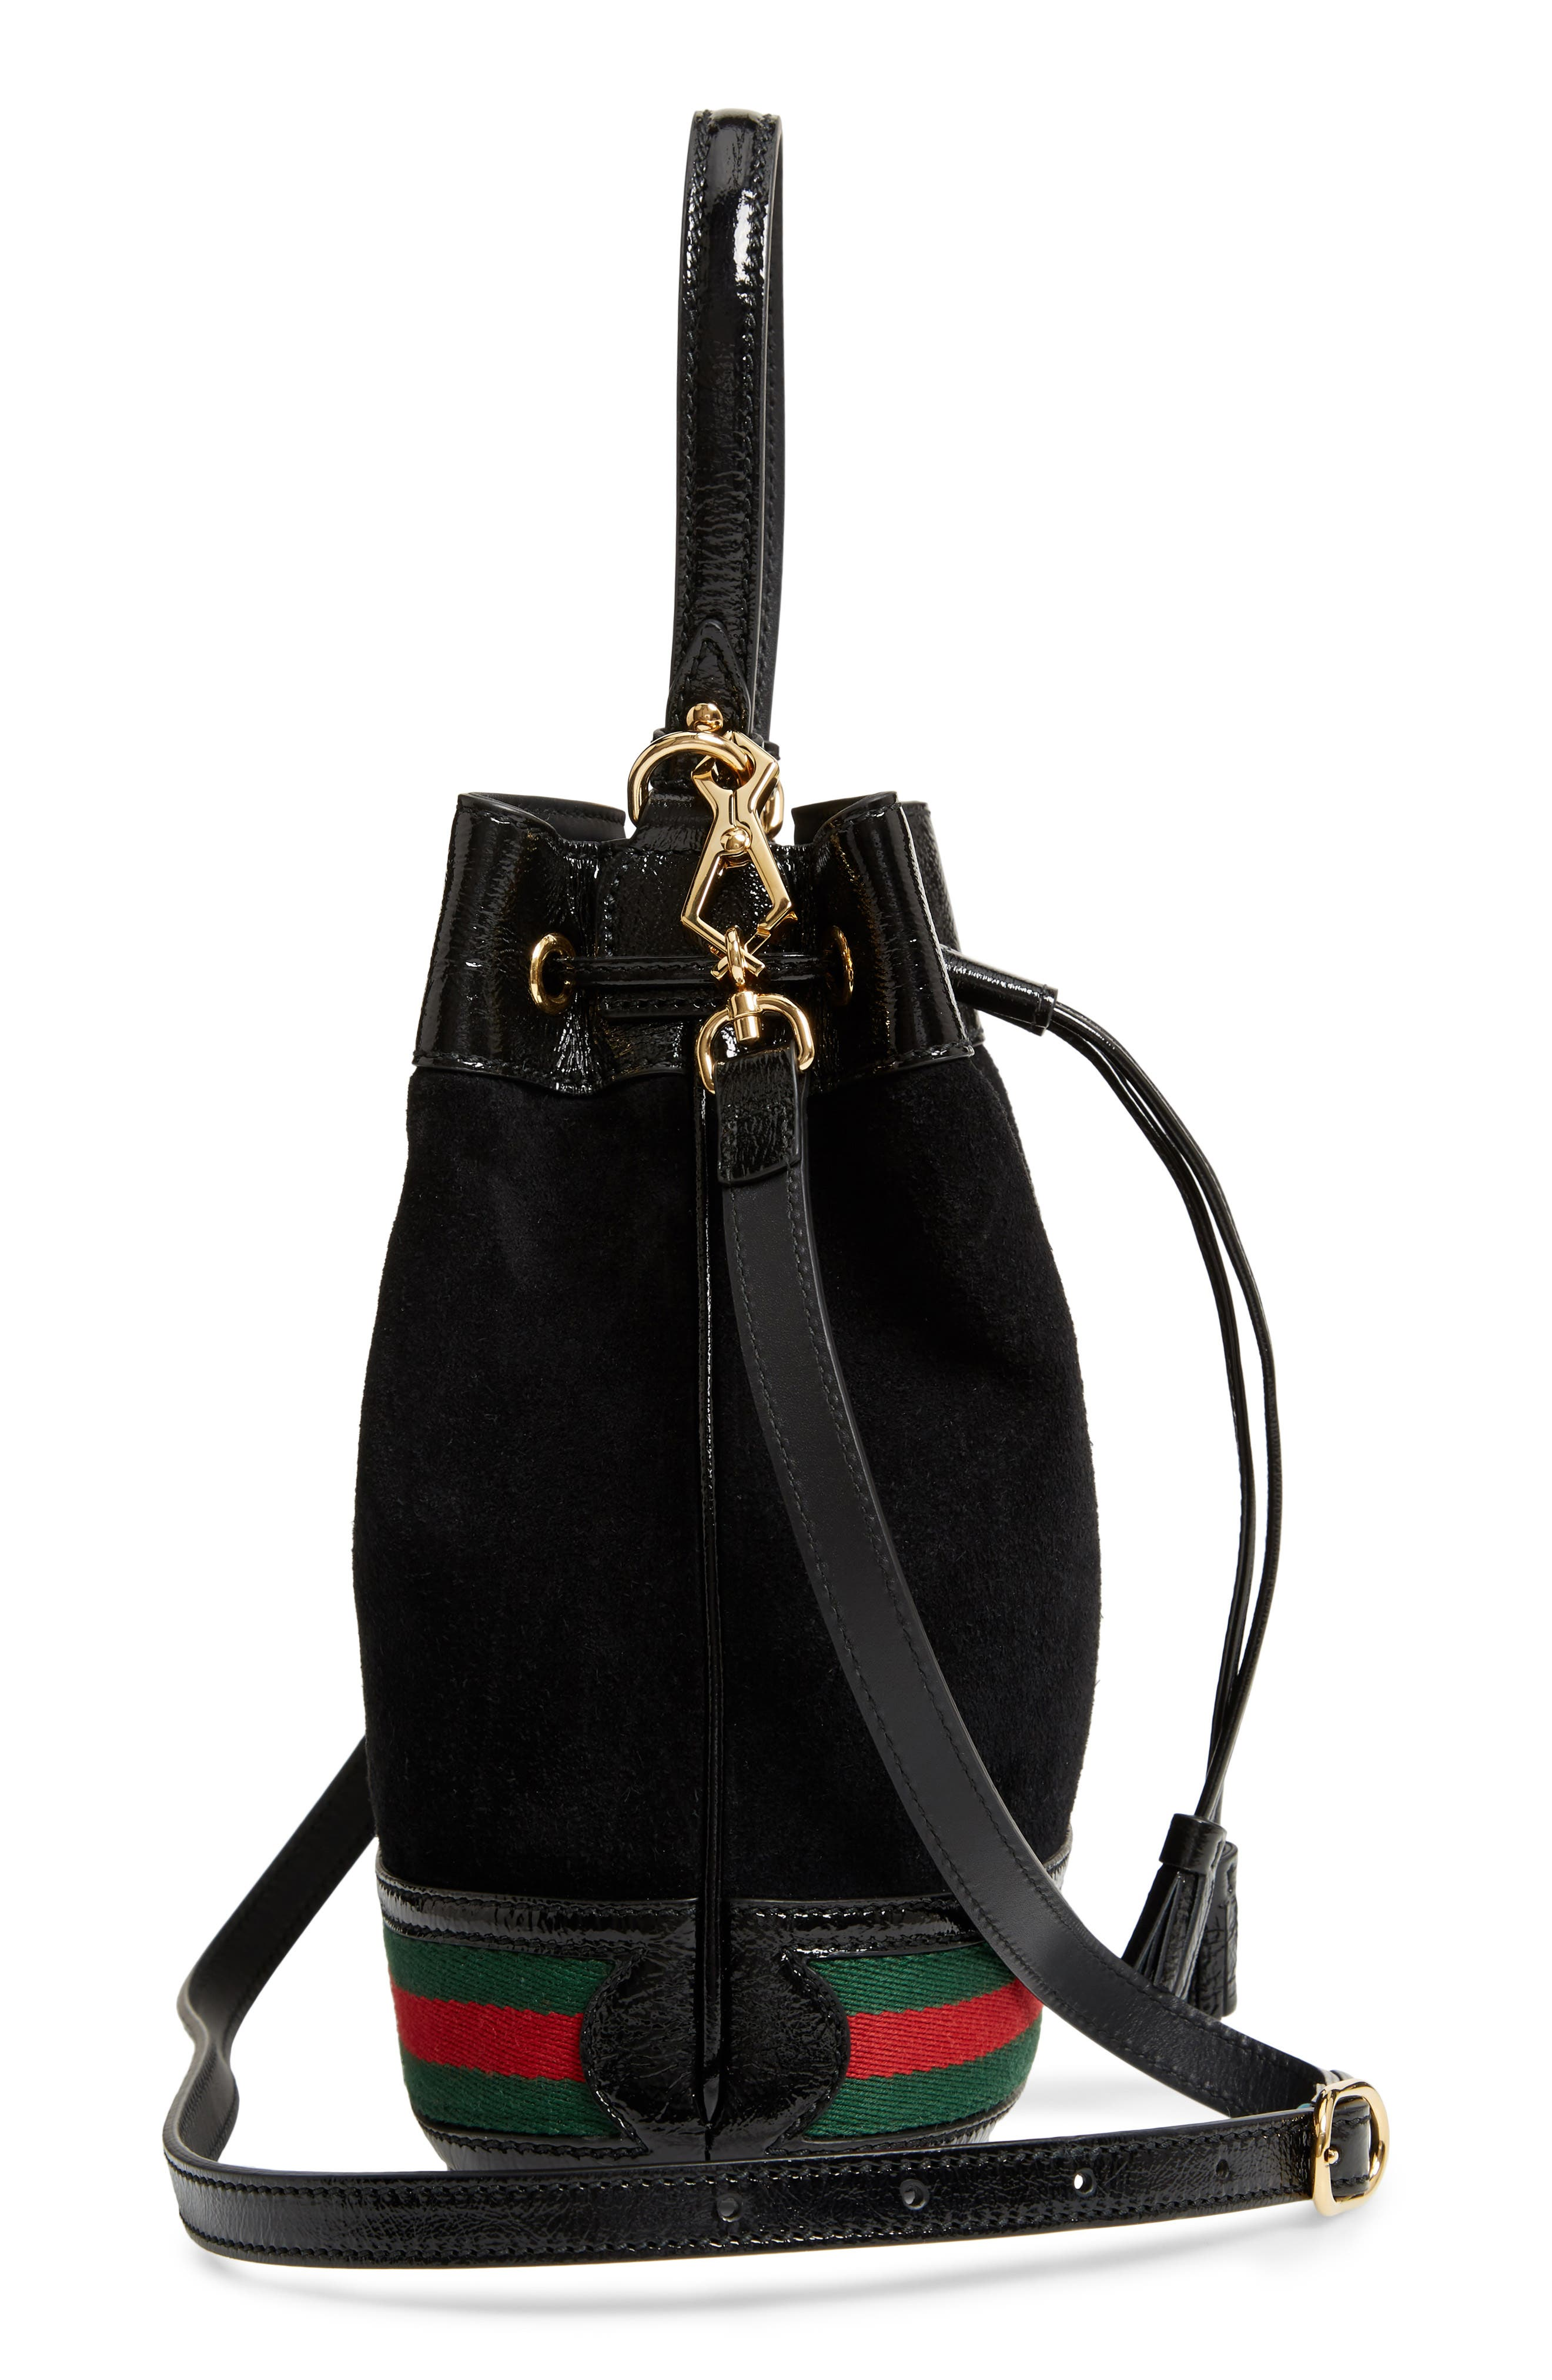 Small Ophidia Suede & Leather Bucket Bag,                             Alternate thumbnail 6, color,                             NERO/ VERT/ RED